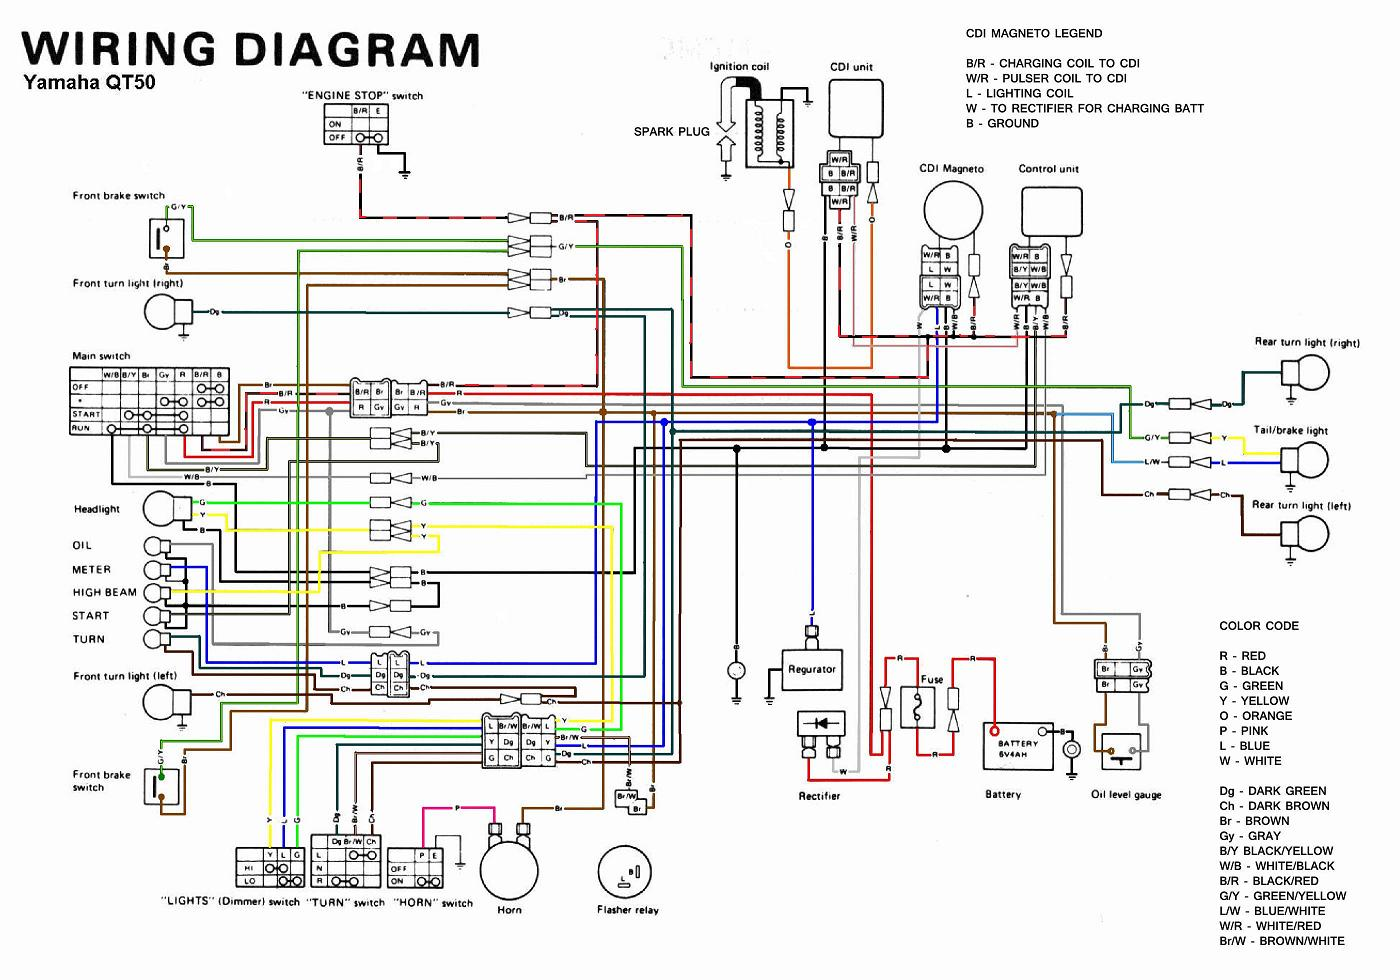 Mini Beast Air Horn Wiring Diagram in addition Wiring Diagram Ford Alternator Boats together with Wiringt2 further Hyster Forklift Wiring Diagram further Xkcd Circuit Diagram. on international starter wiring diagram